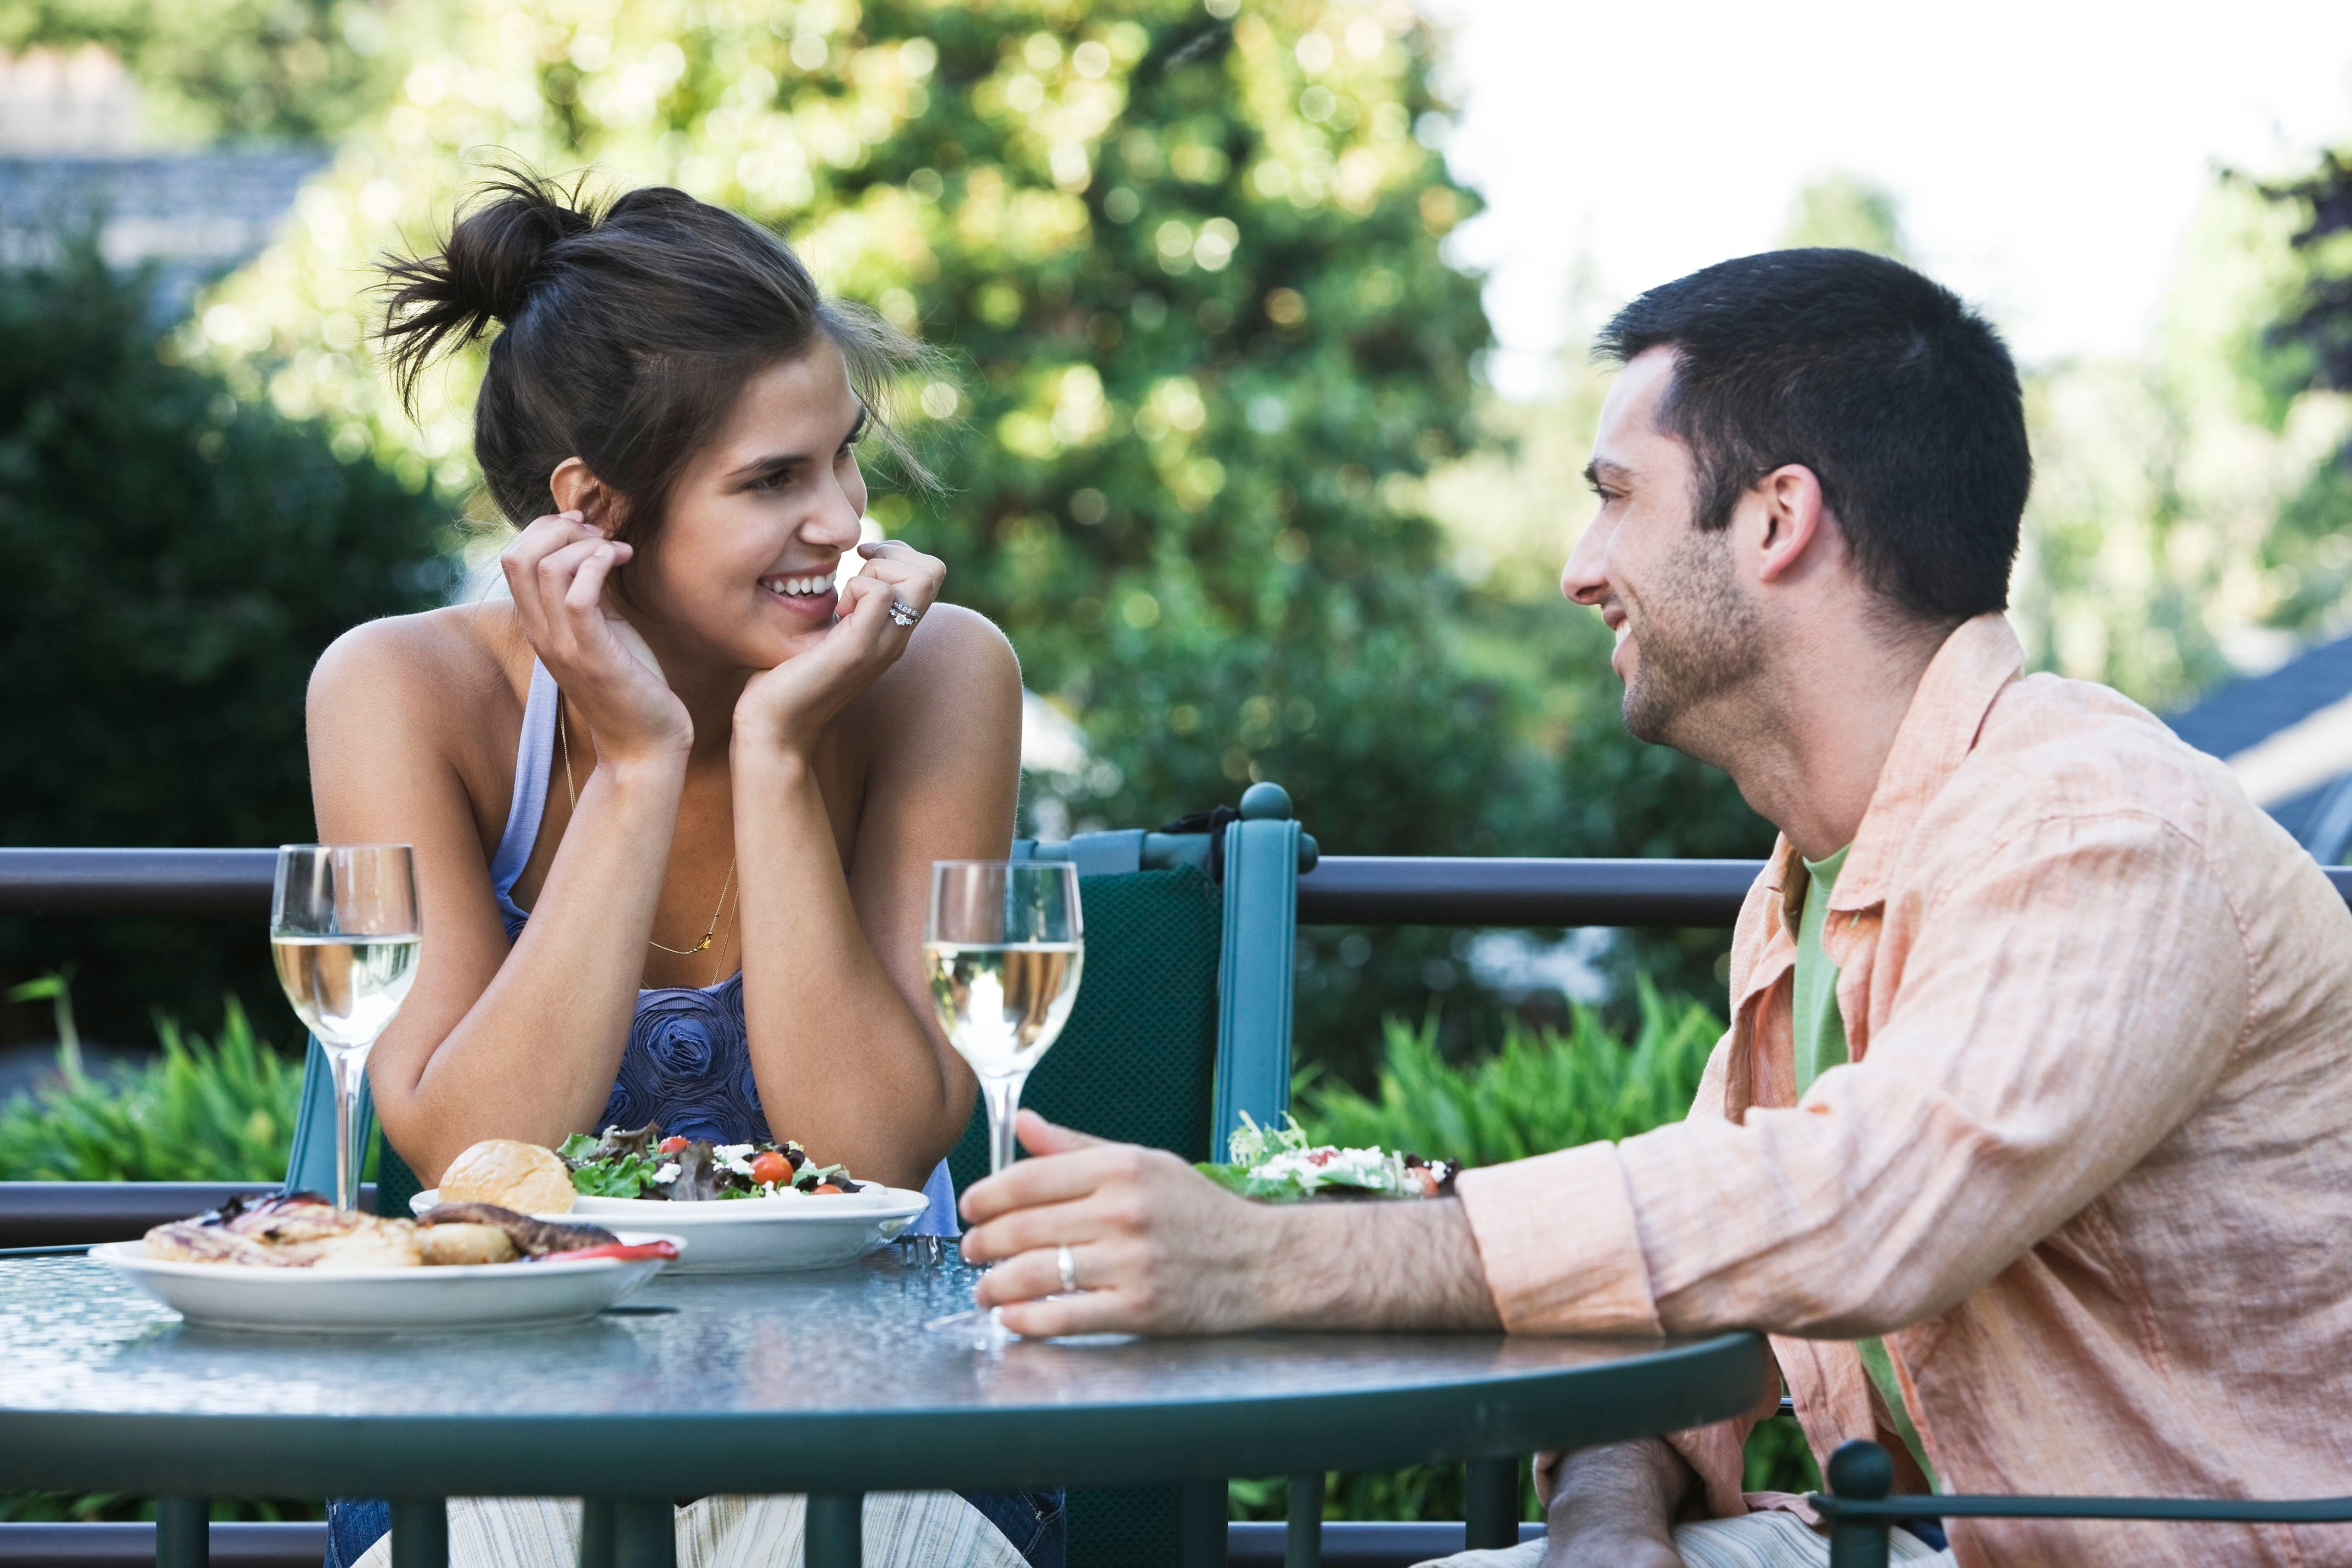 dating Burnout Mean